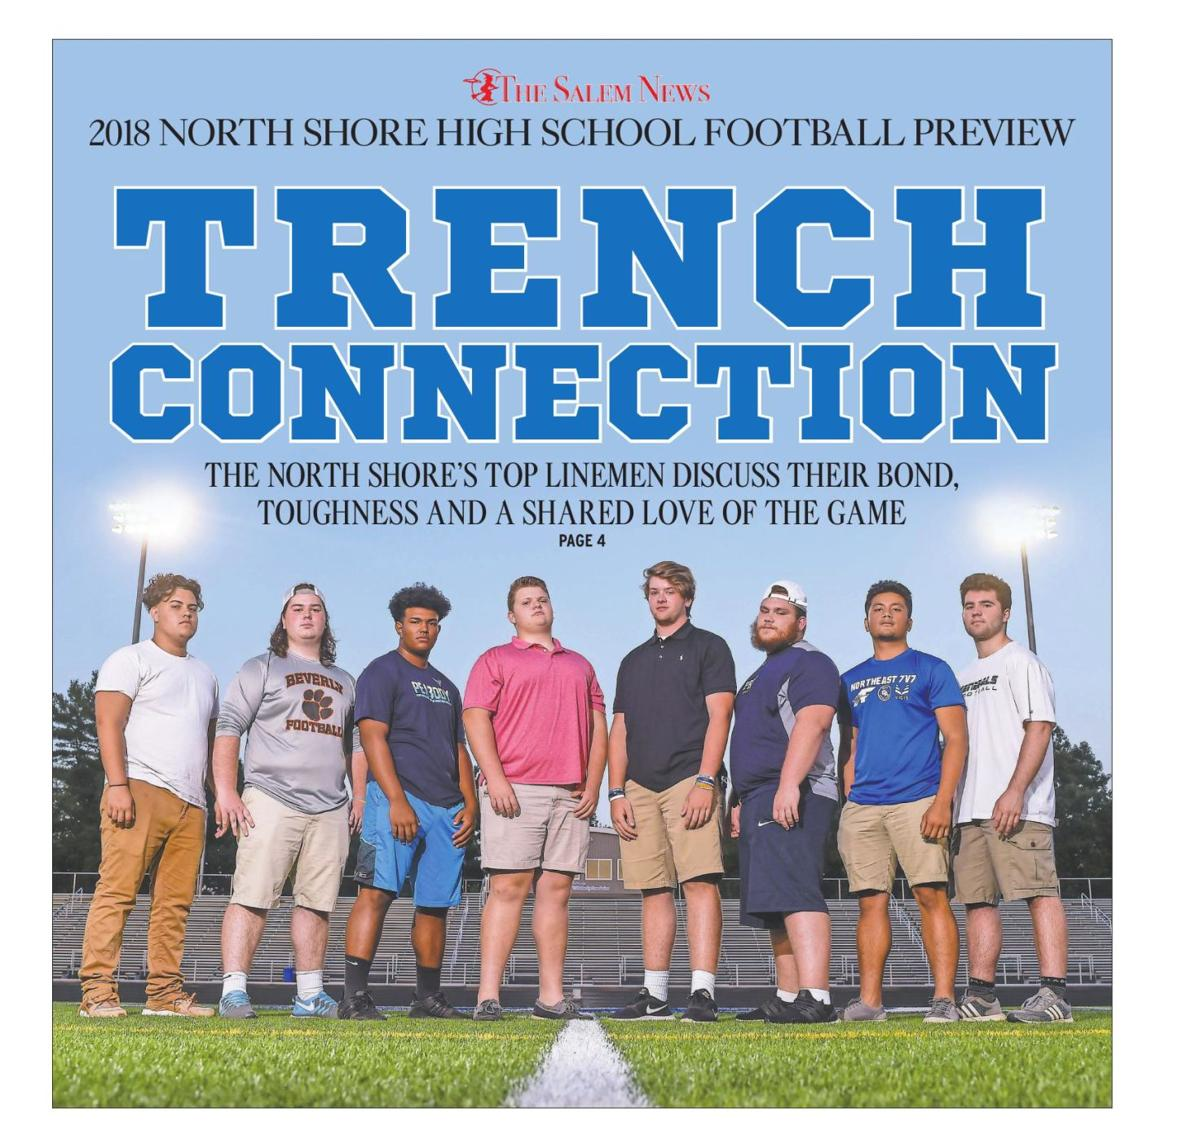 2018 NORTH SHORE HIGH SCHOOL FOOTBALL PREVIEW